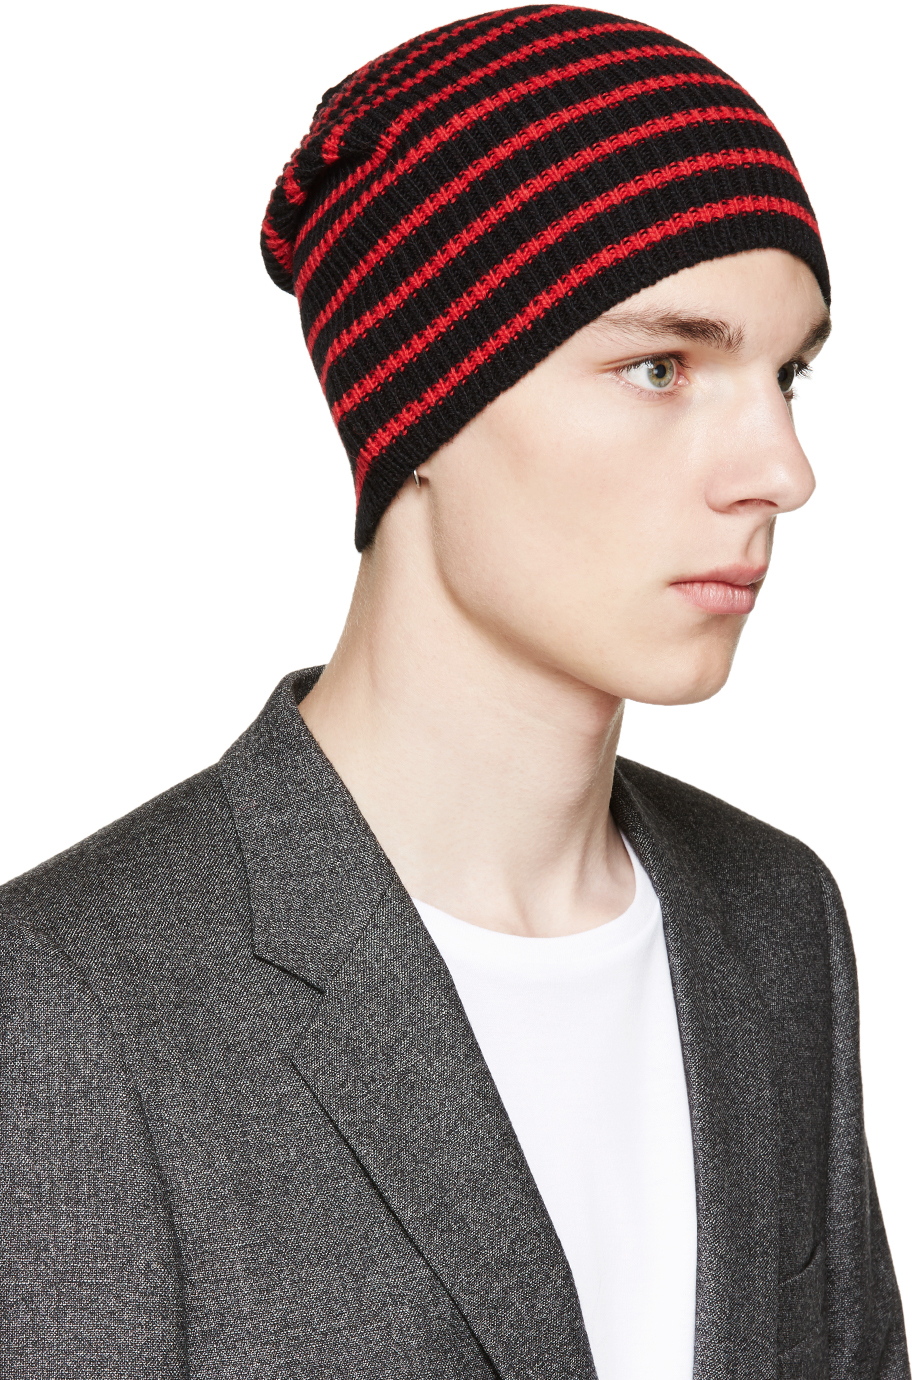 Lyst - Saint Laurent Black And Red Striped Beanie in Red for Men f521b1eef8d